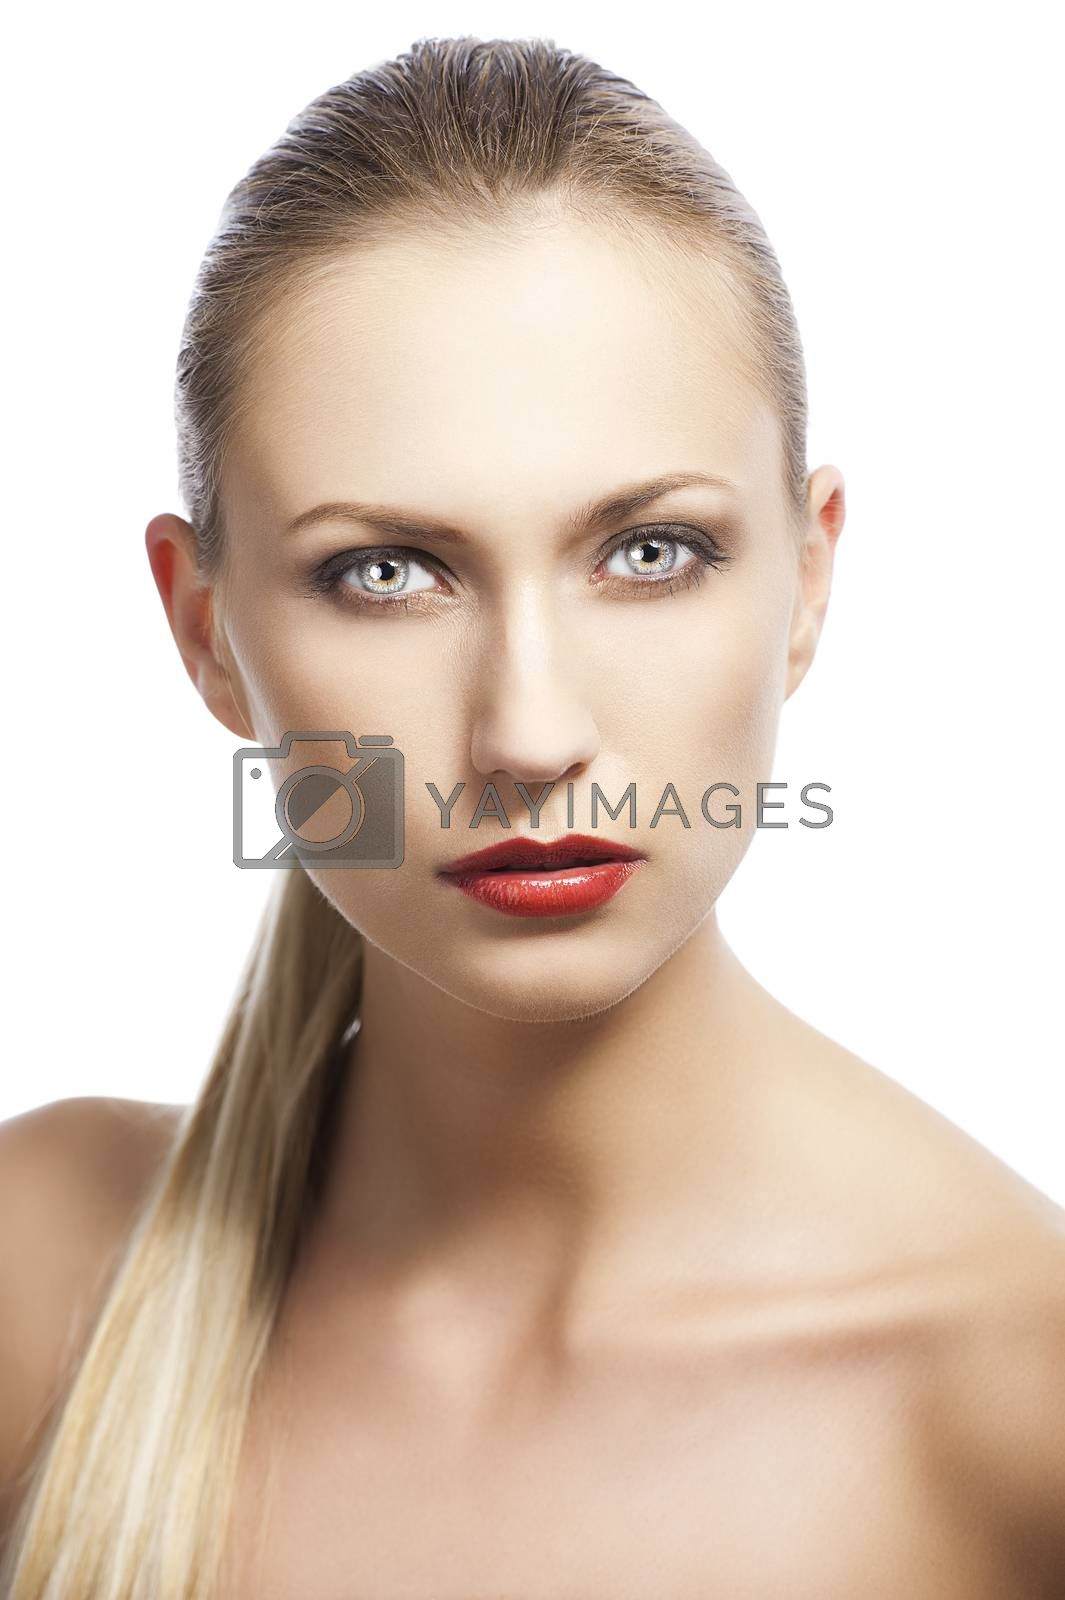 Royalty free image of beauty woman over white, she looks in to the lens by fotoCD